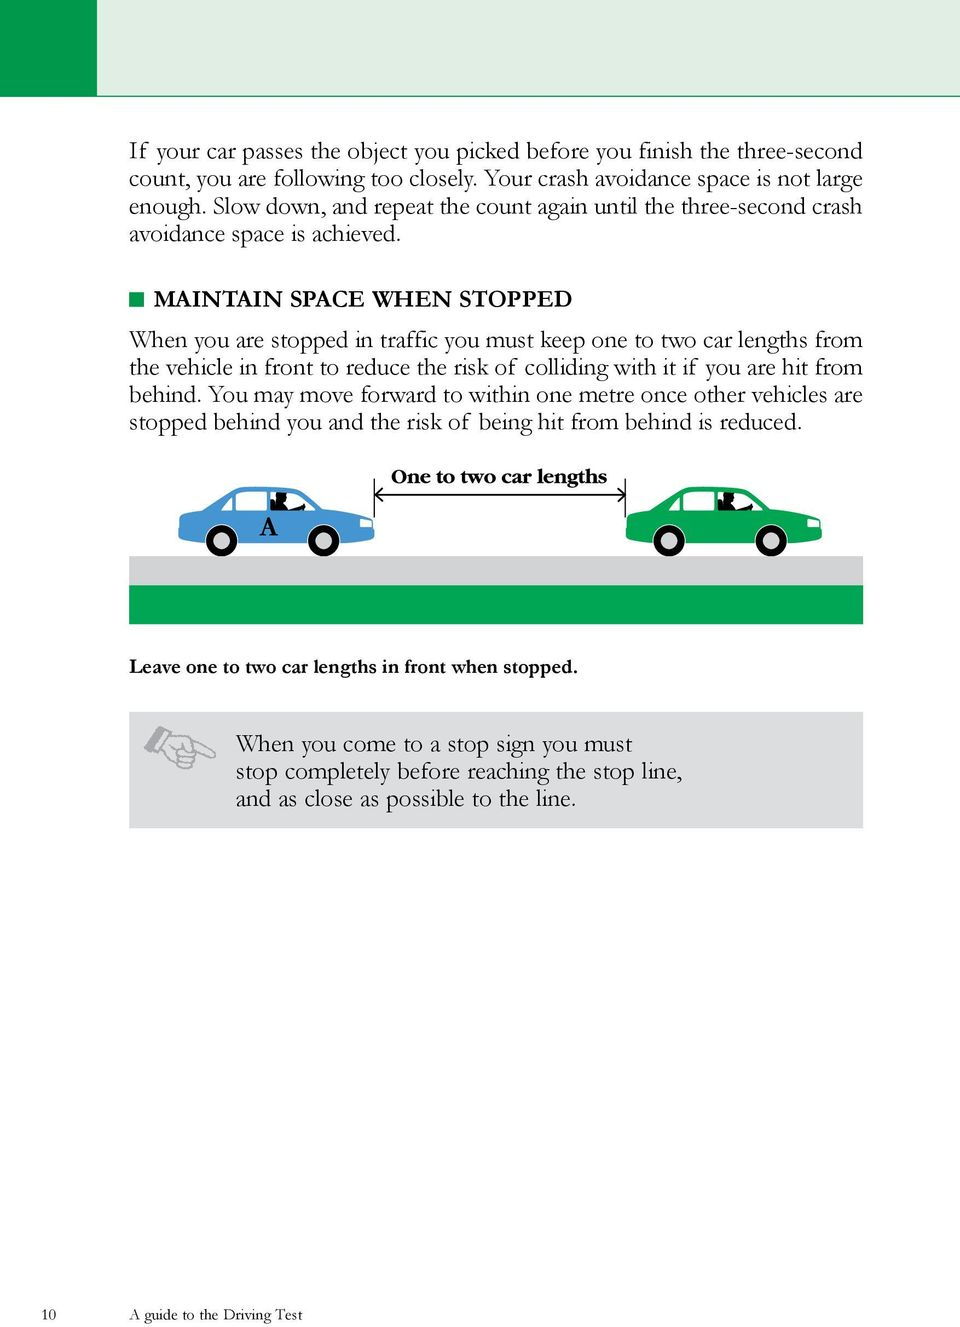 MINTIN SPCE WHEN STOPPED When you are stopped in traffic you must keep one to two car lengths from the vehicle in front to reduce the risk of colliding with it if you are hit from behind.